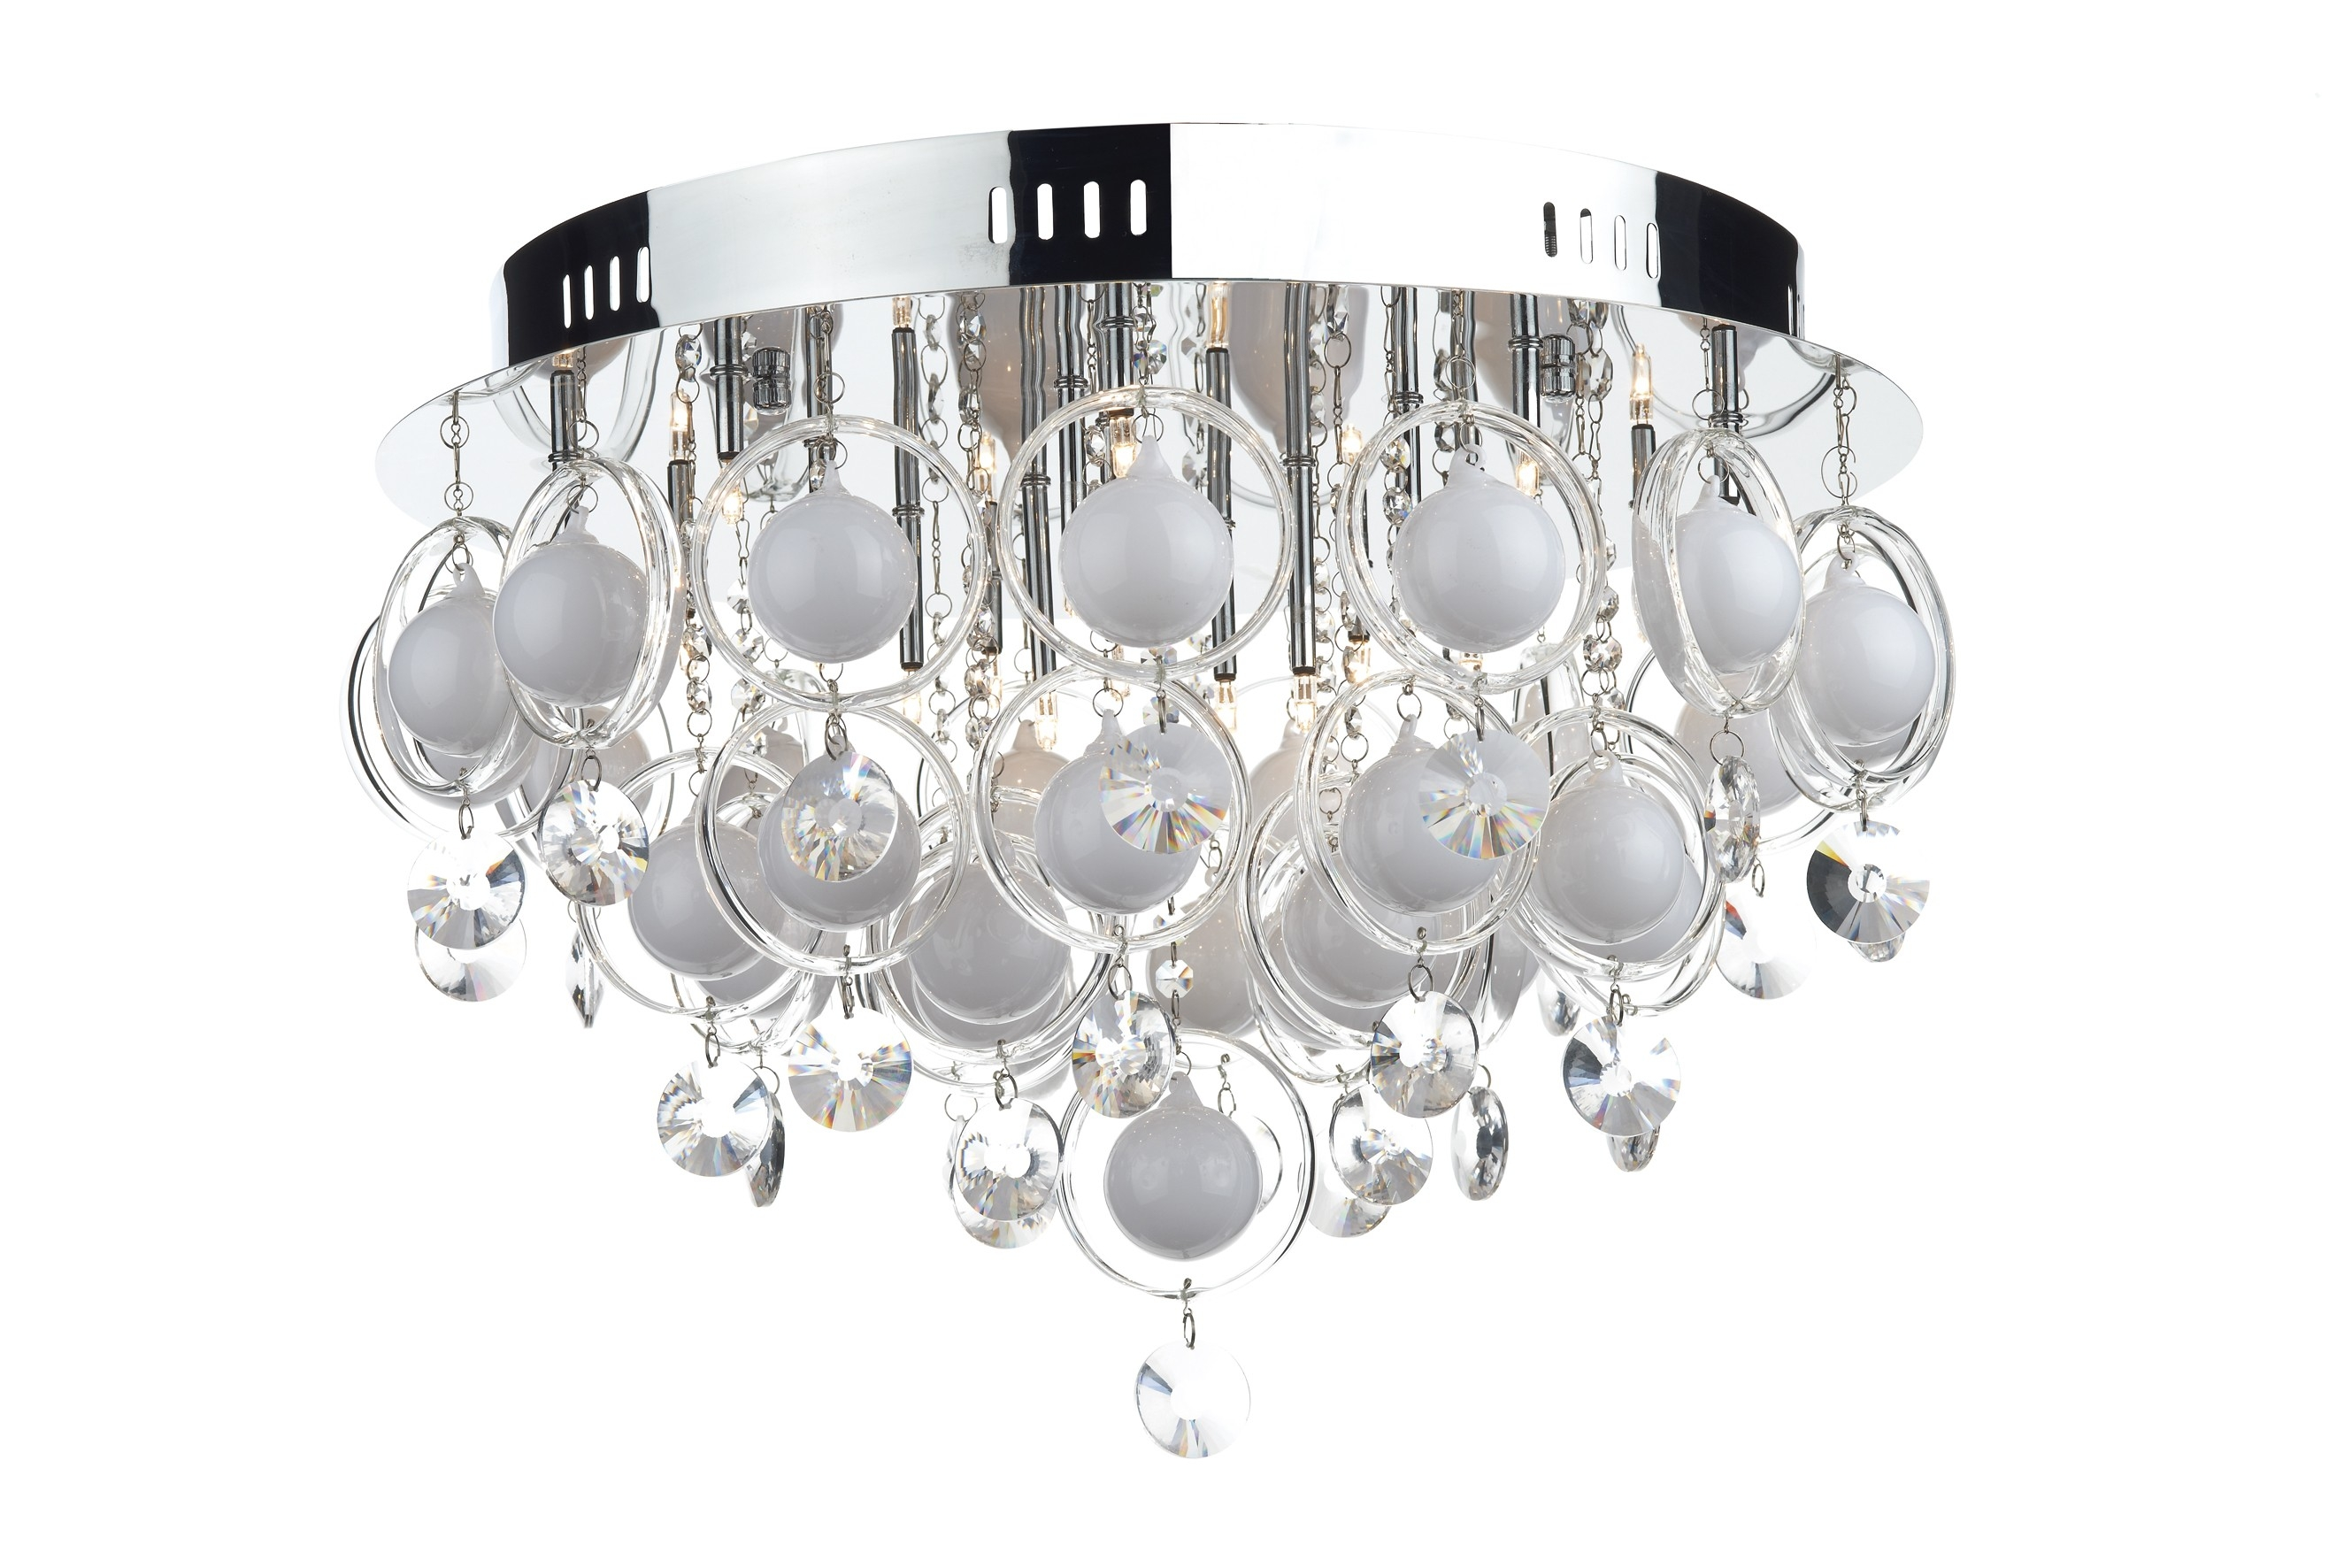 18 Light Ceiling Fitting In Flush Fitting Chandelier (Image 1 of 15)